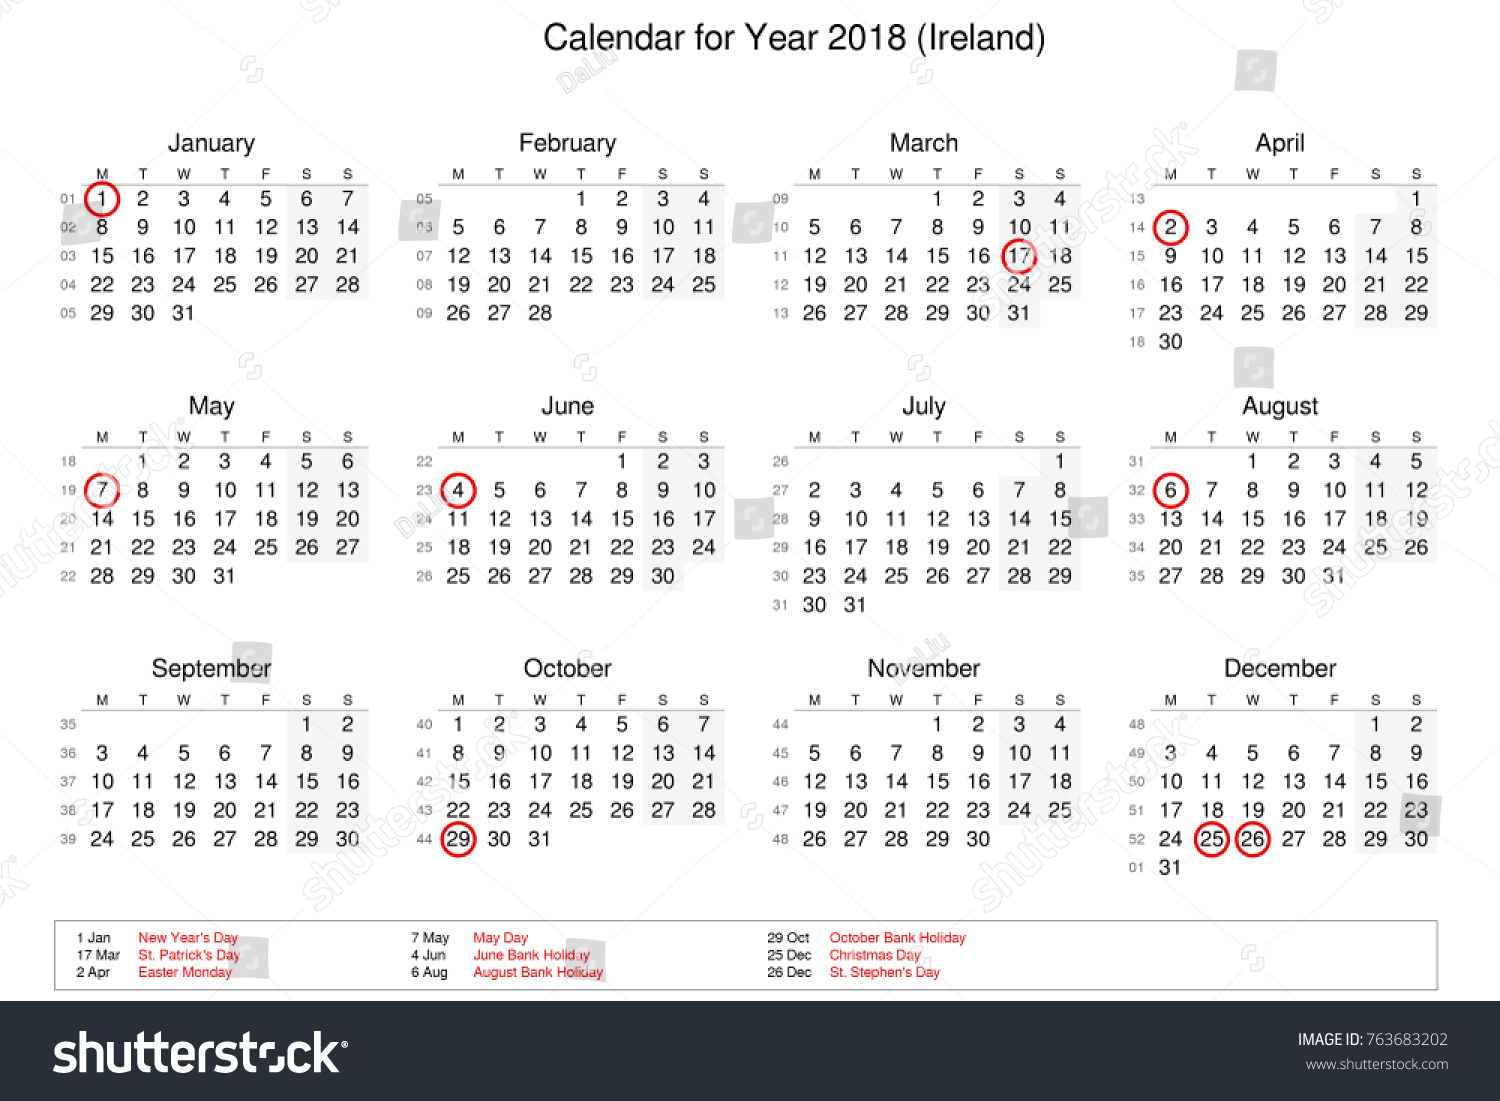 calendar of year 2018 with public holidays and bank holidays for ireland